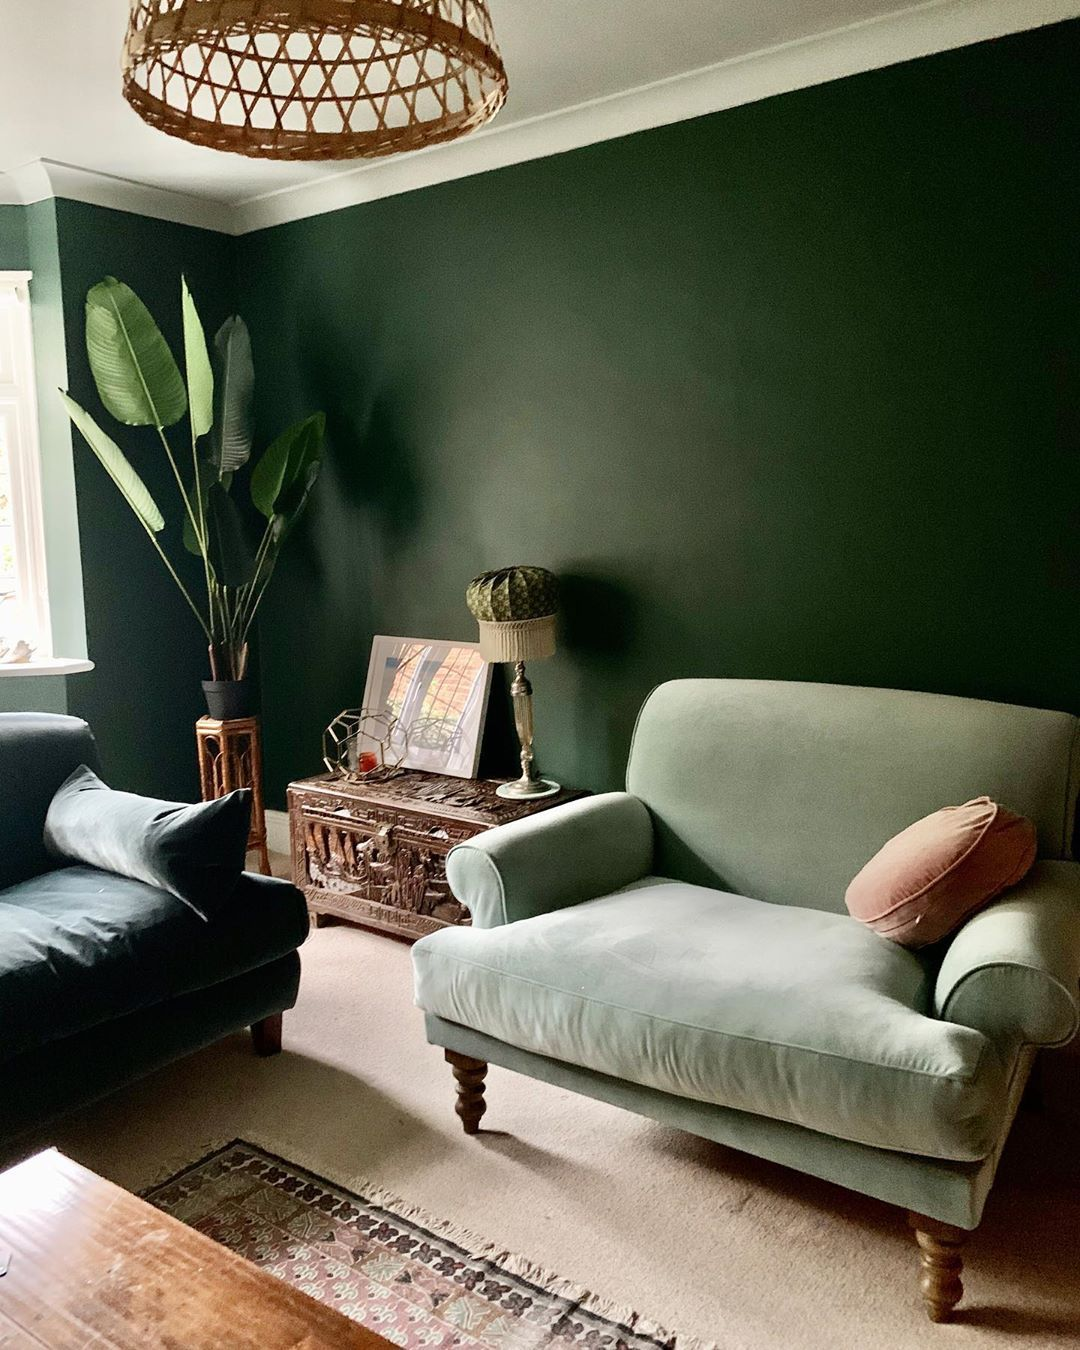 14 Green Living Rooms That Will Inspire You to Go Green